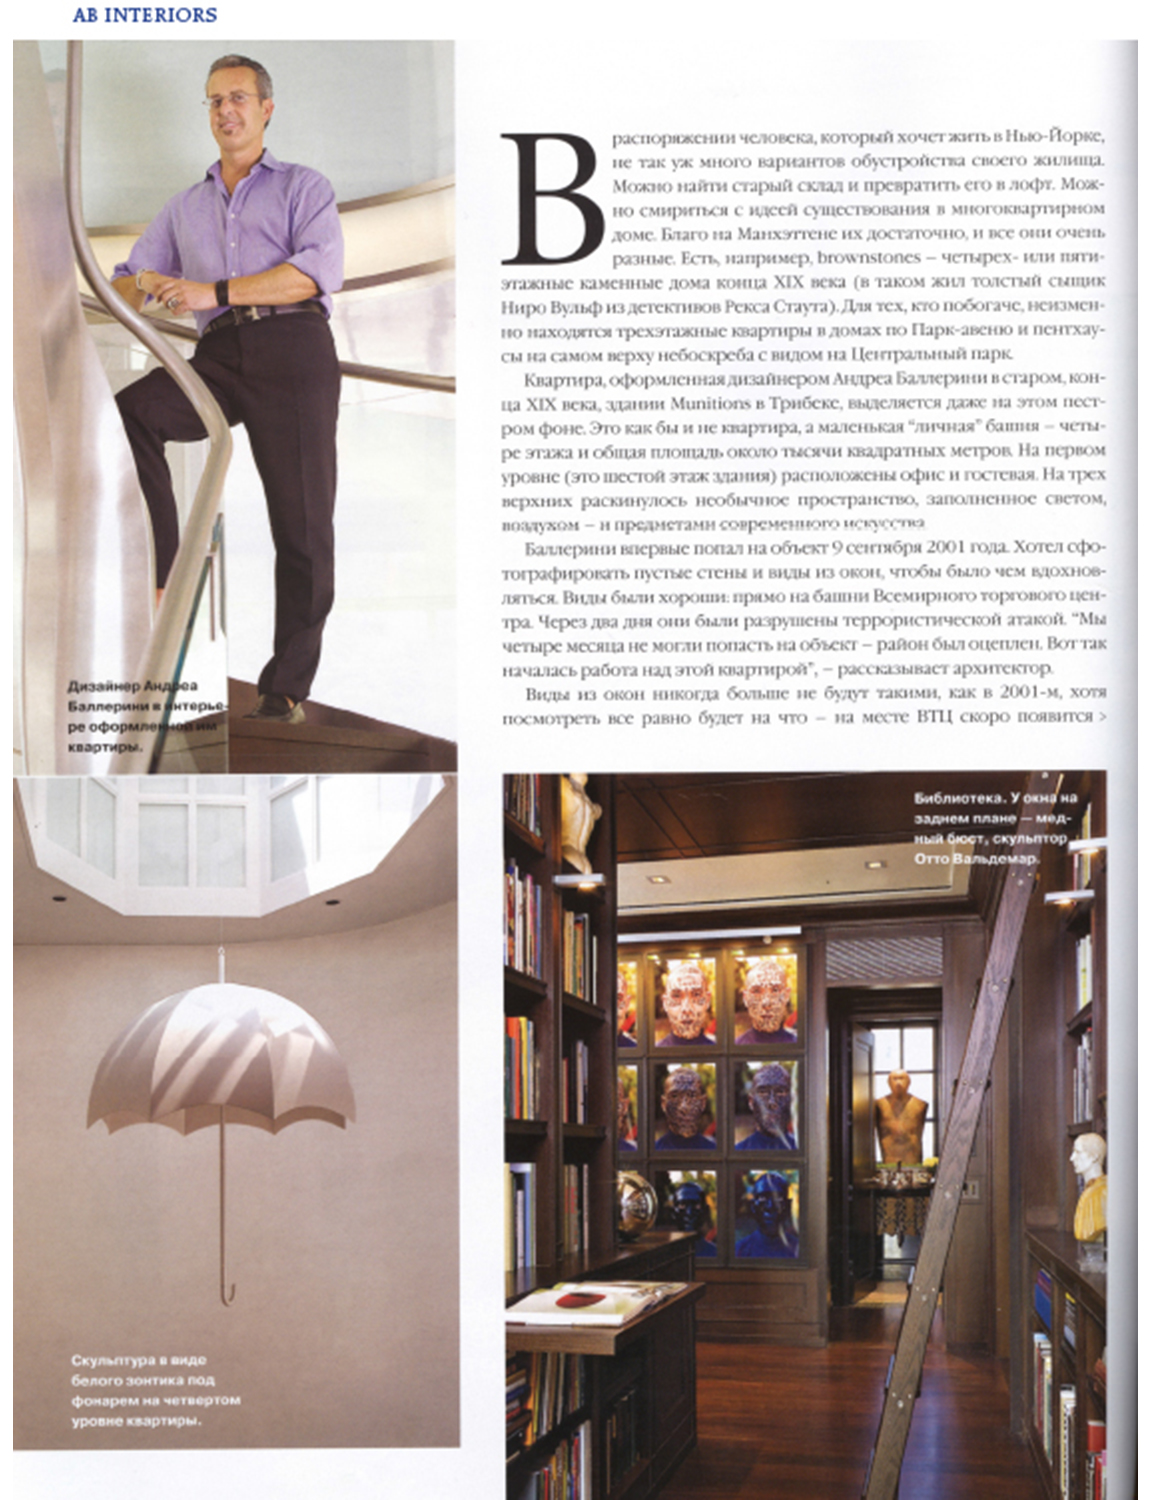 2006_02 ArchDigest russian-page4 copy.jpg